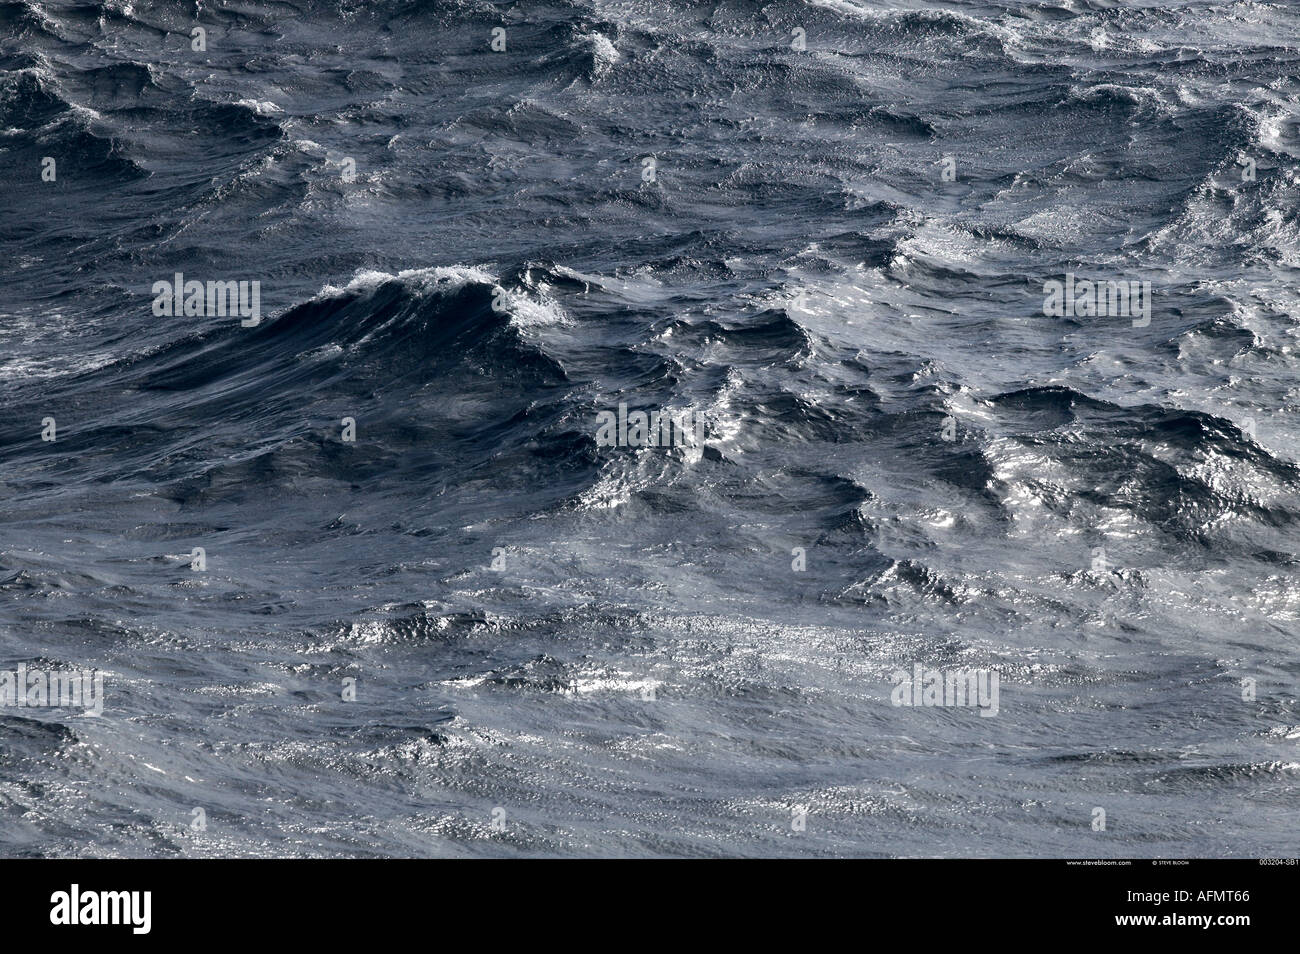 Grey waters of the Southern Ocean - Stock Image